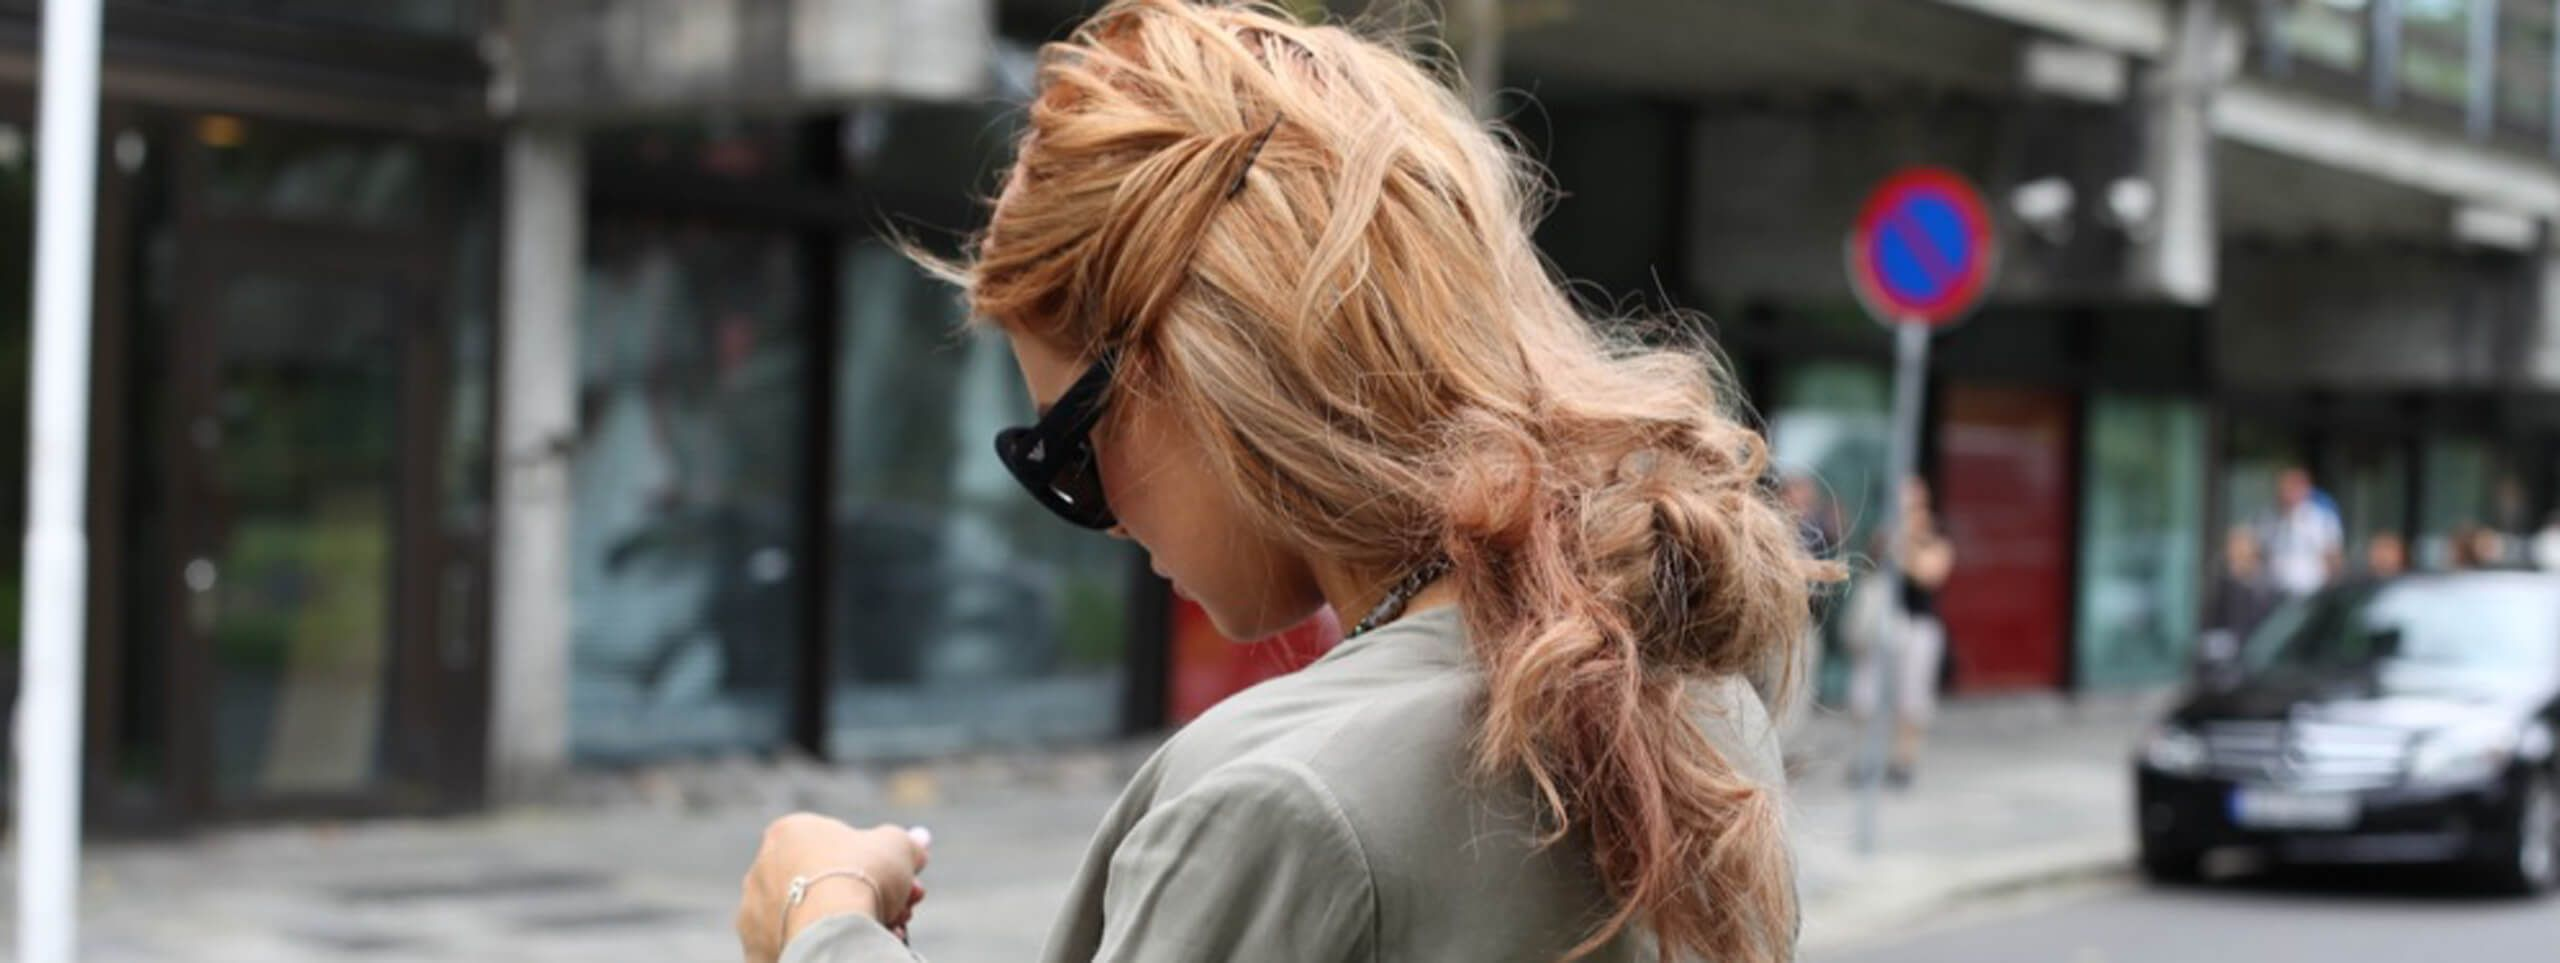 Woman in the street with messy and undone hairstyle